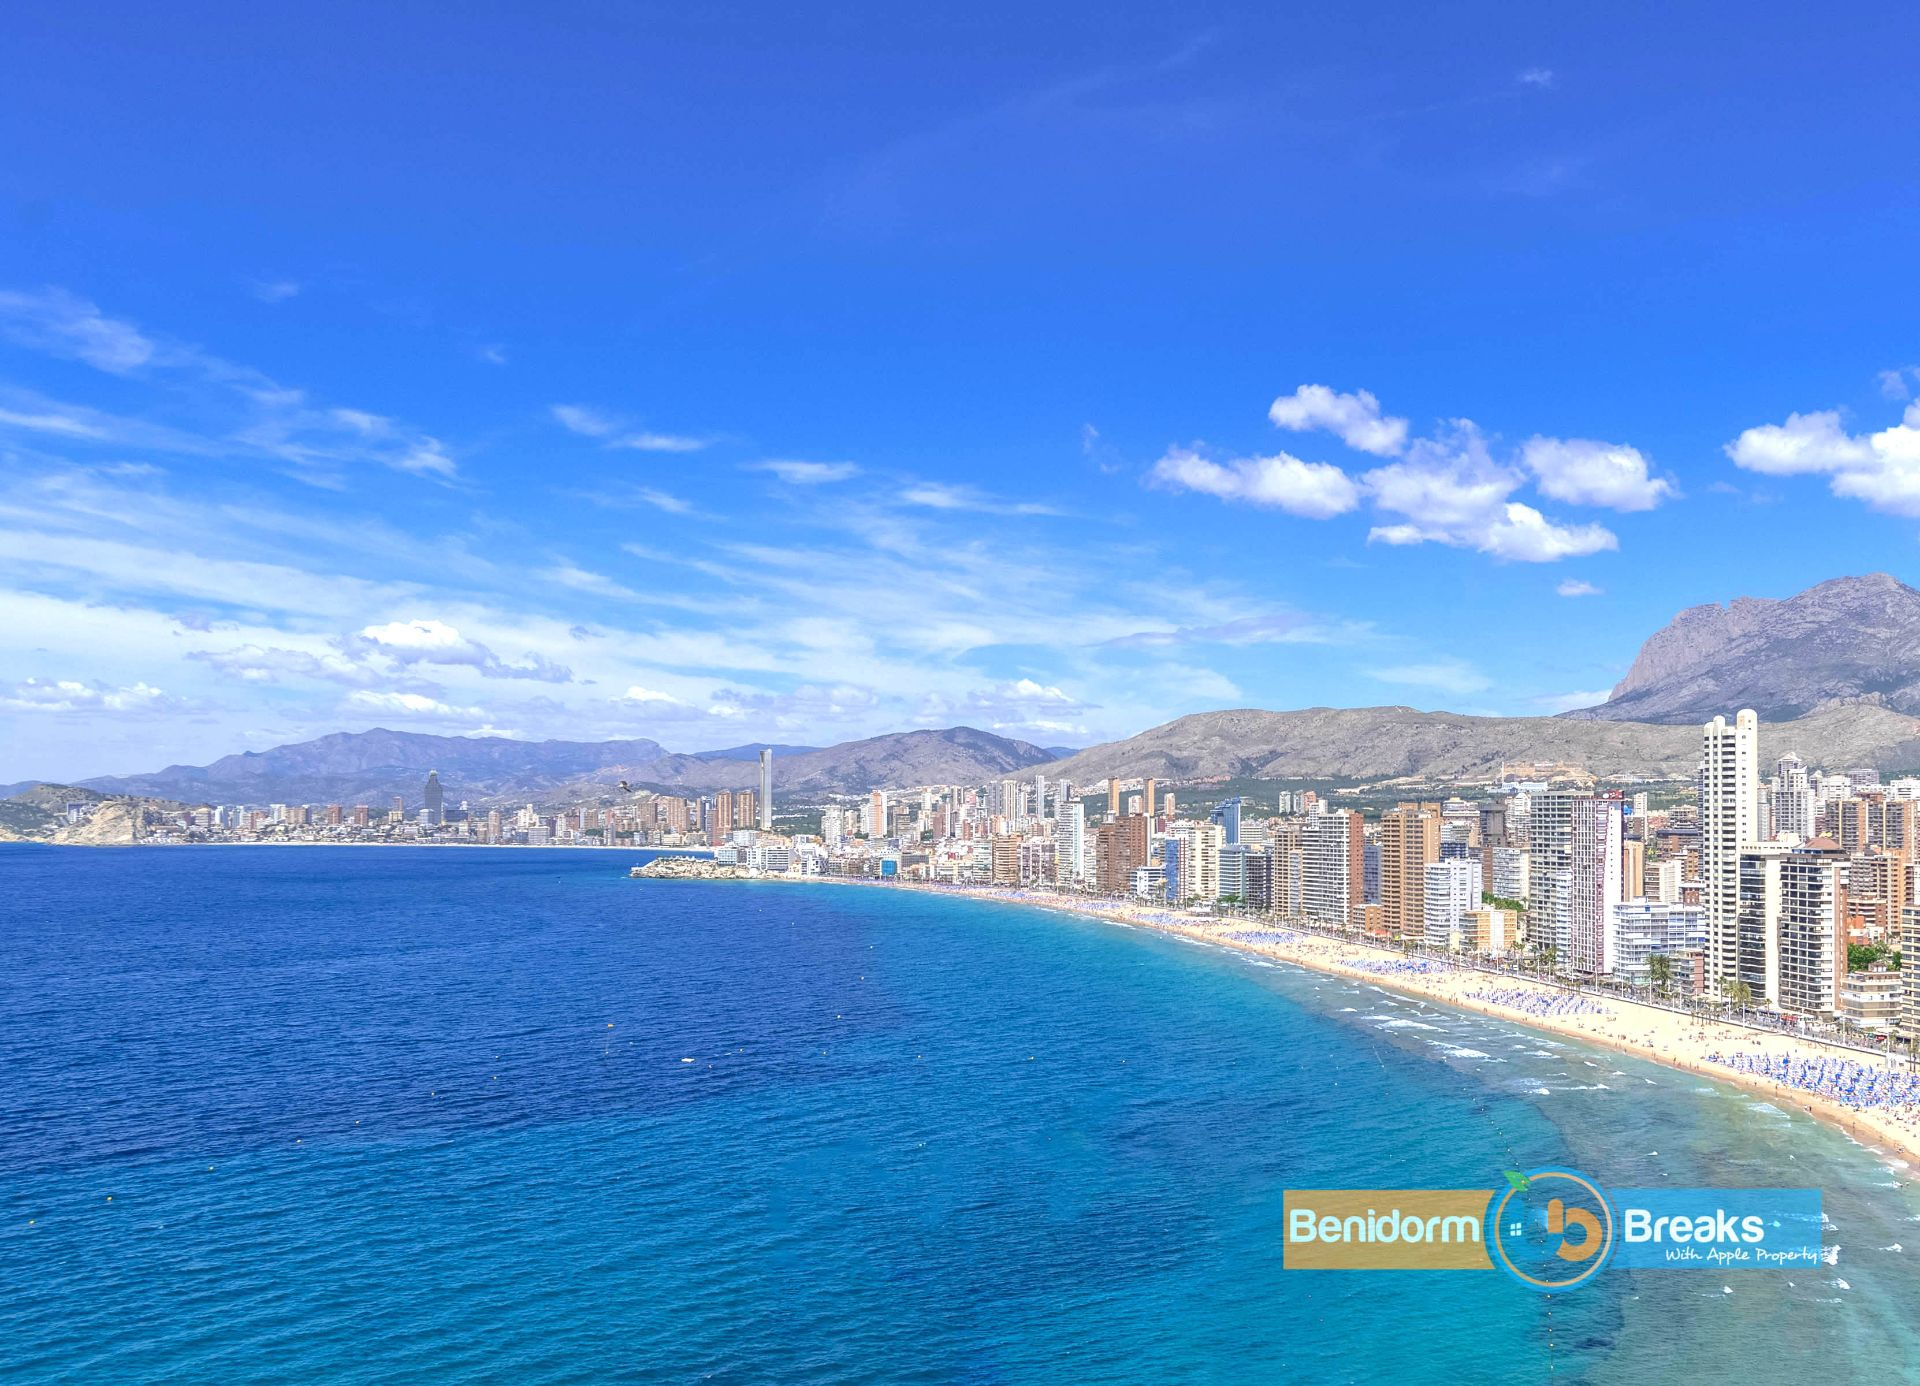 Apartment in Benidorm, rincon de loix, holiday rentals